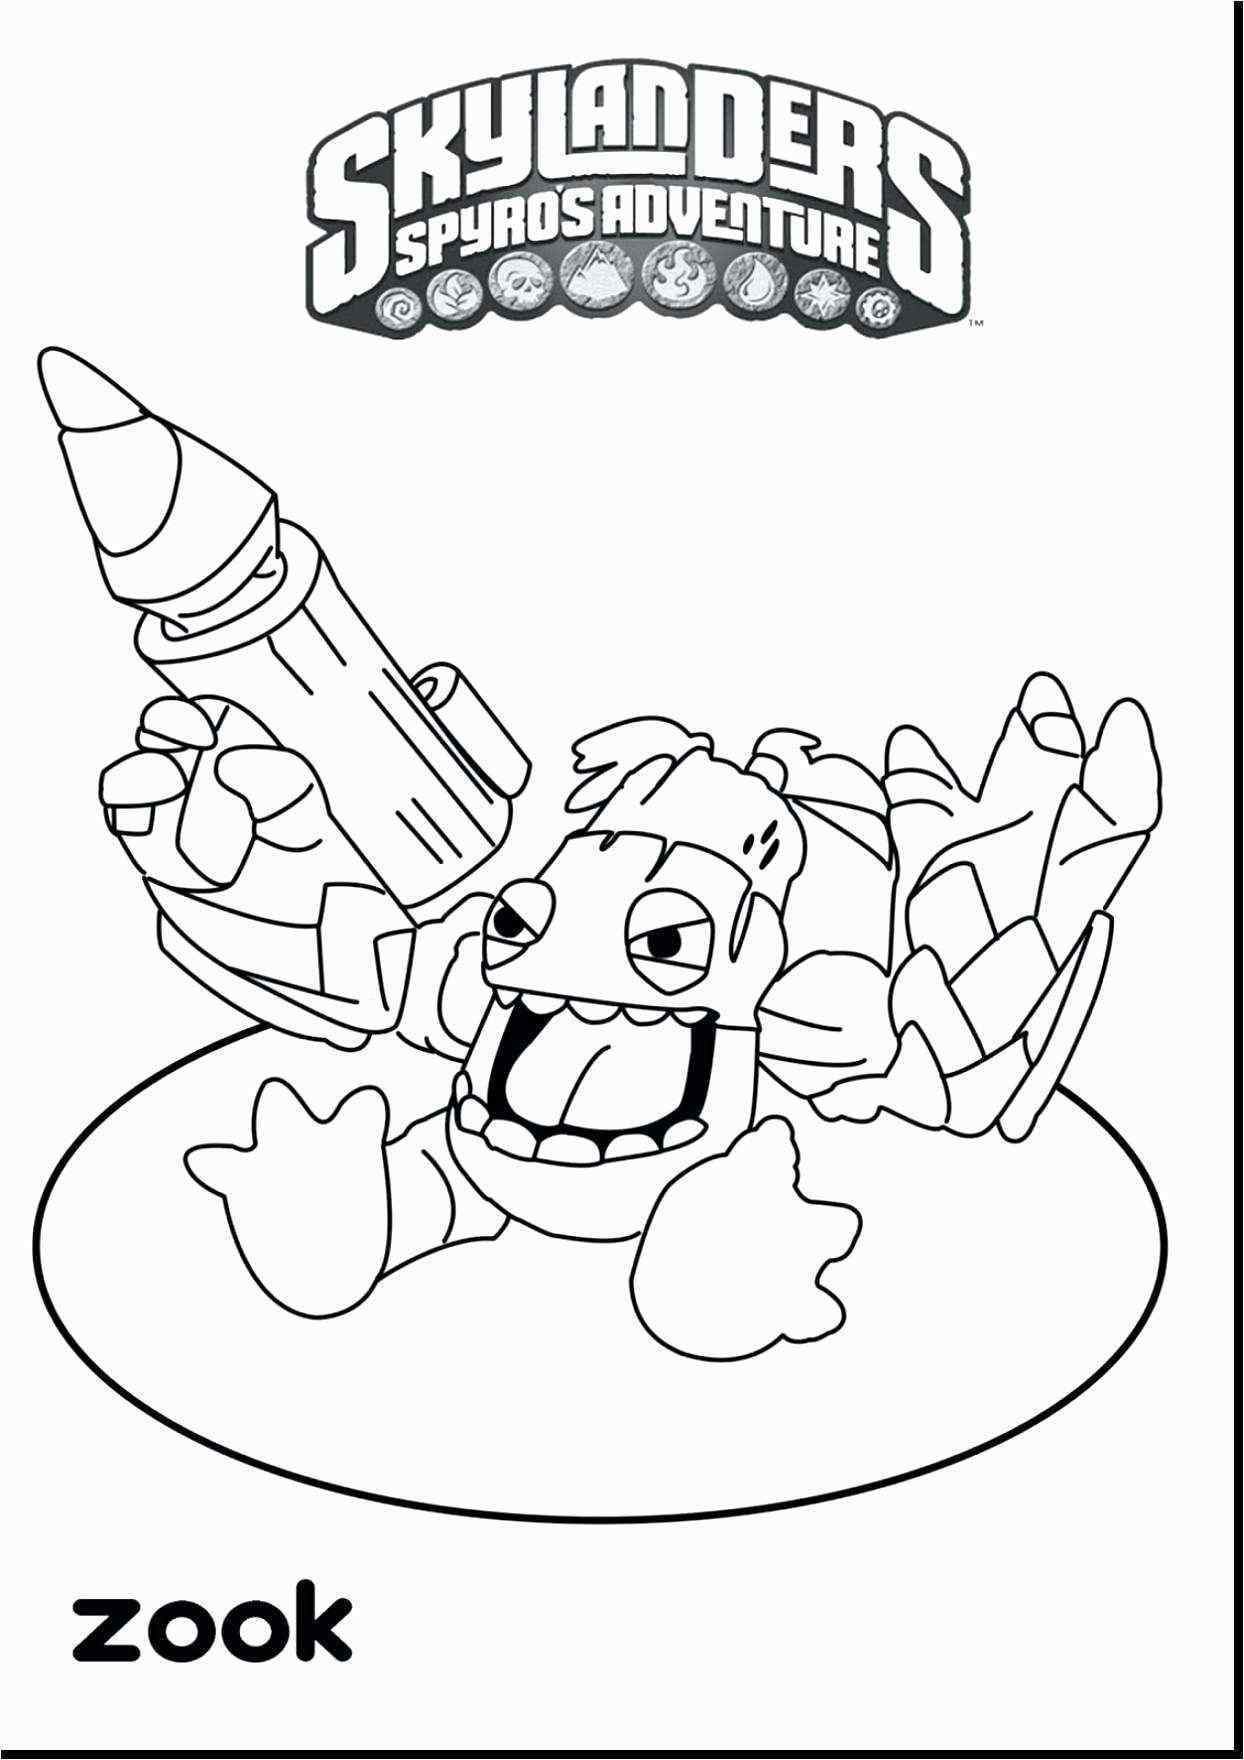 Animation Coloring Pages  Download 19j - Free Download